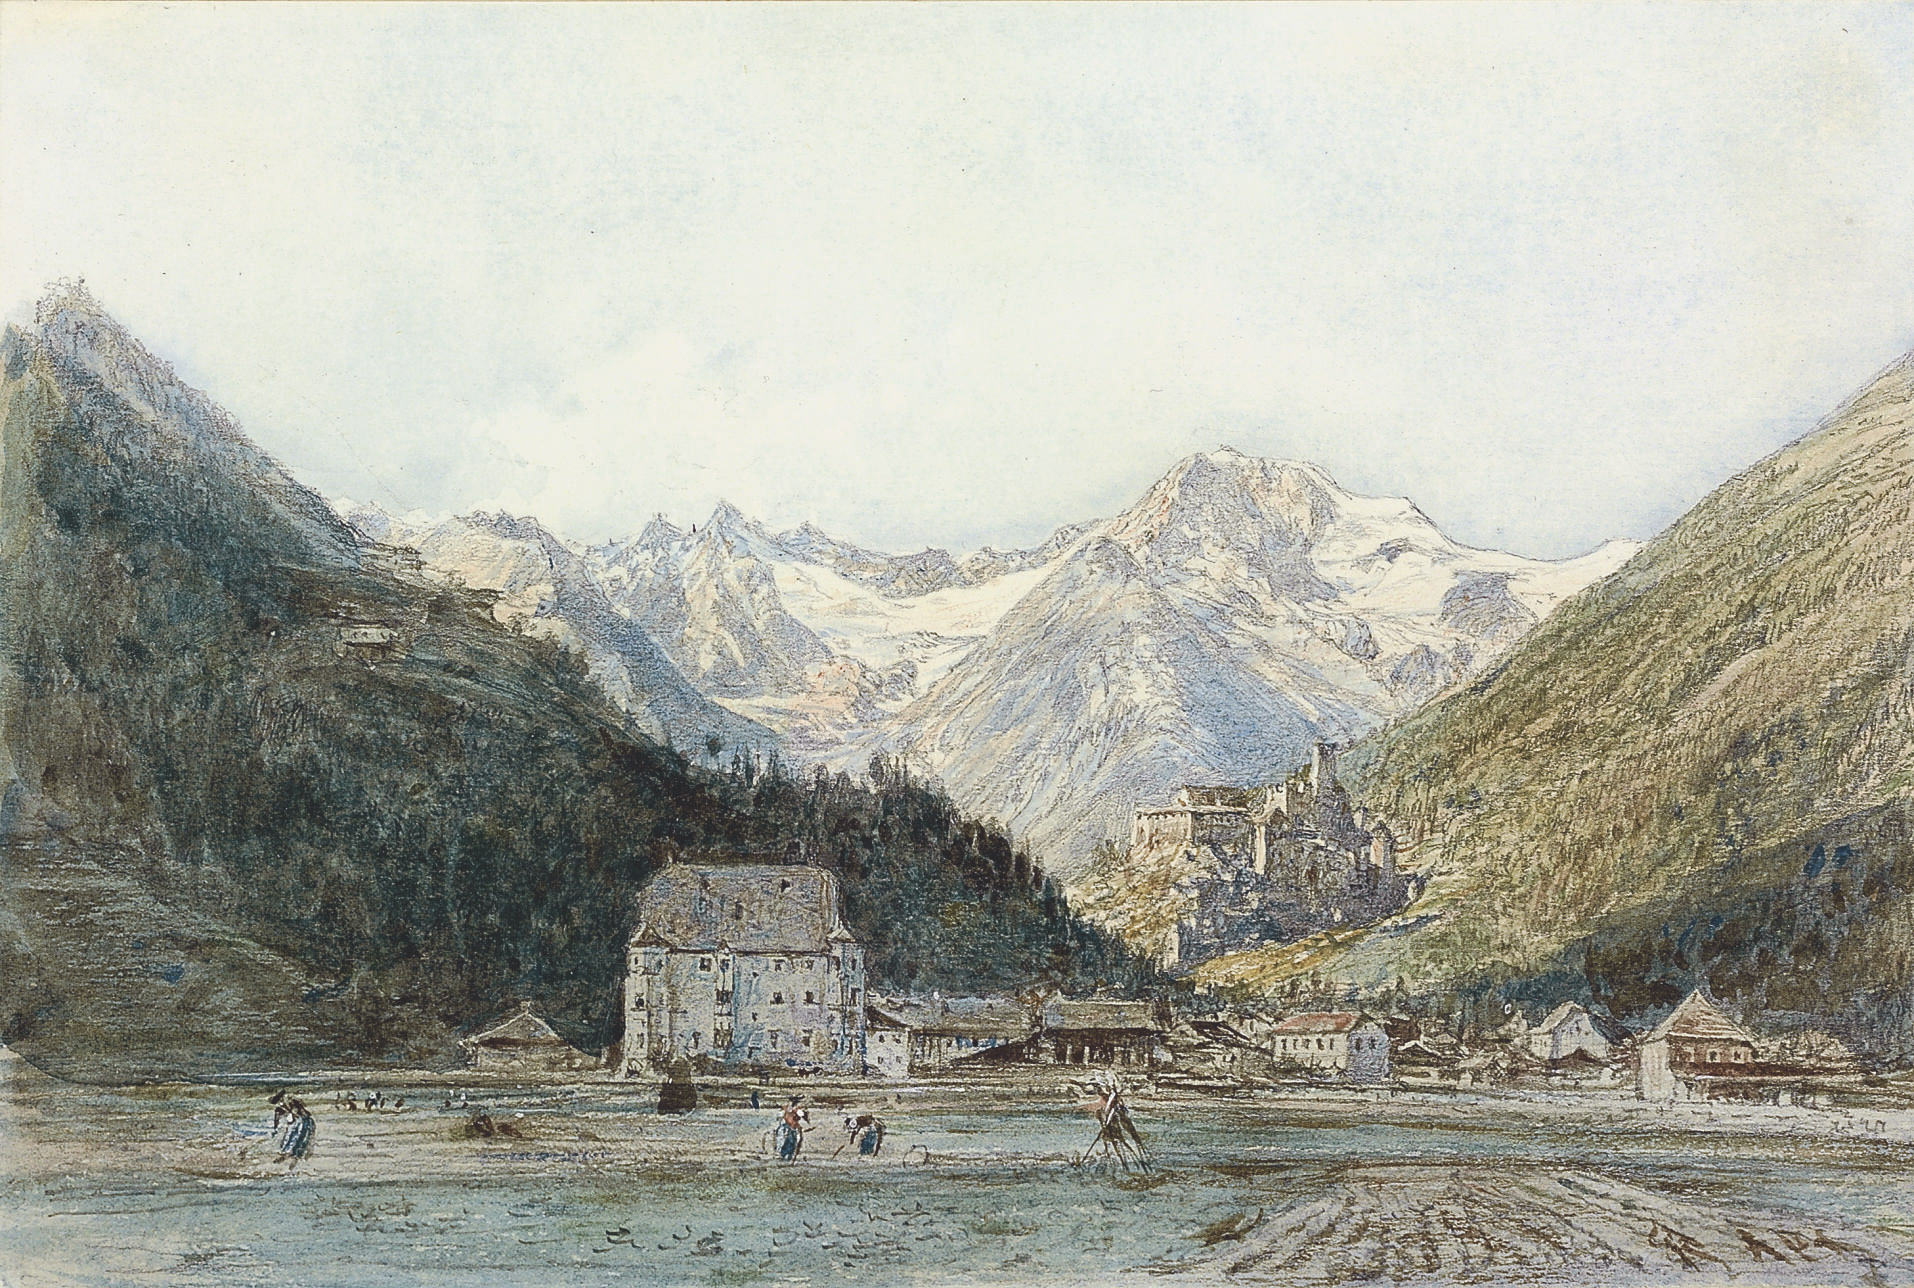 A town in a valley